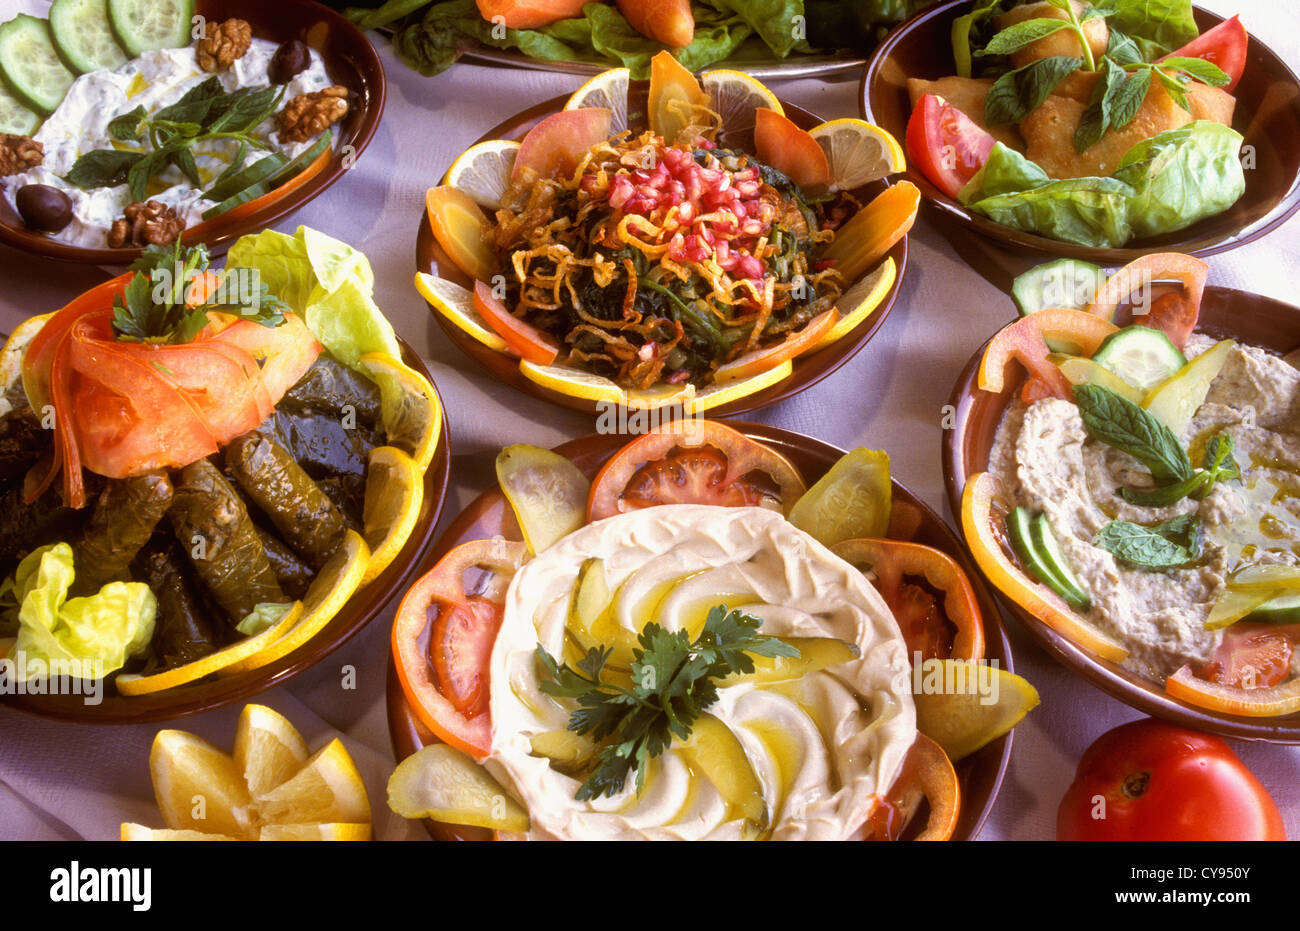 385 best images about Syrian Dishes on Pinterest ...  |Damascus Food